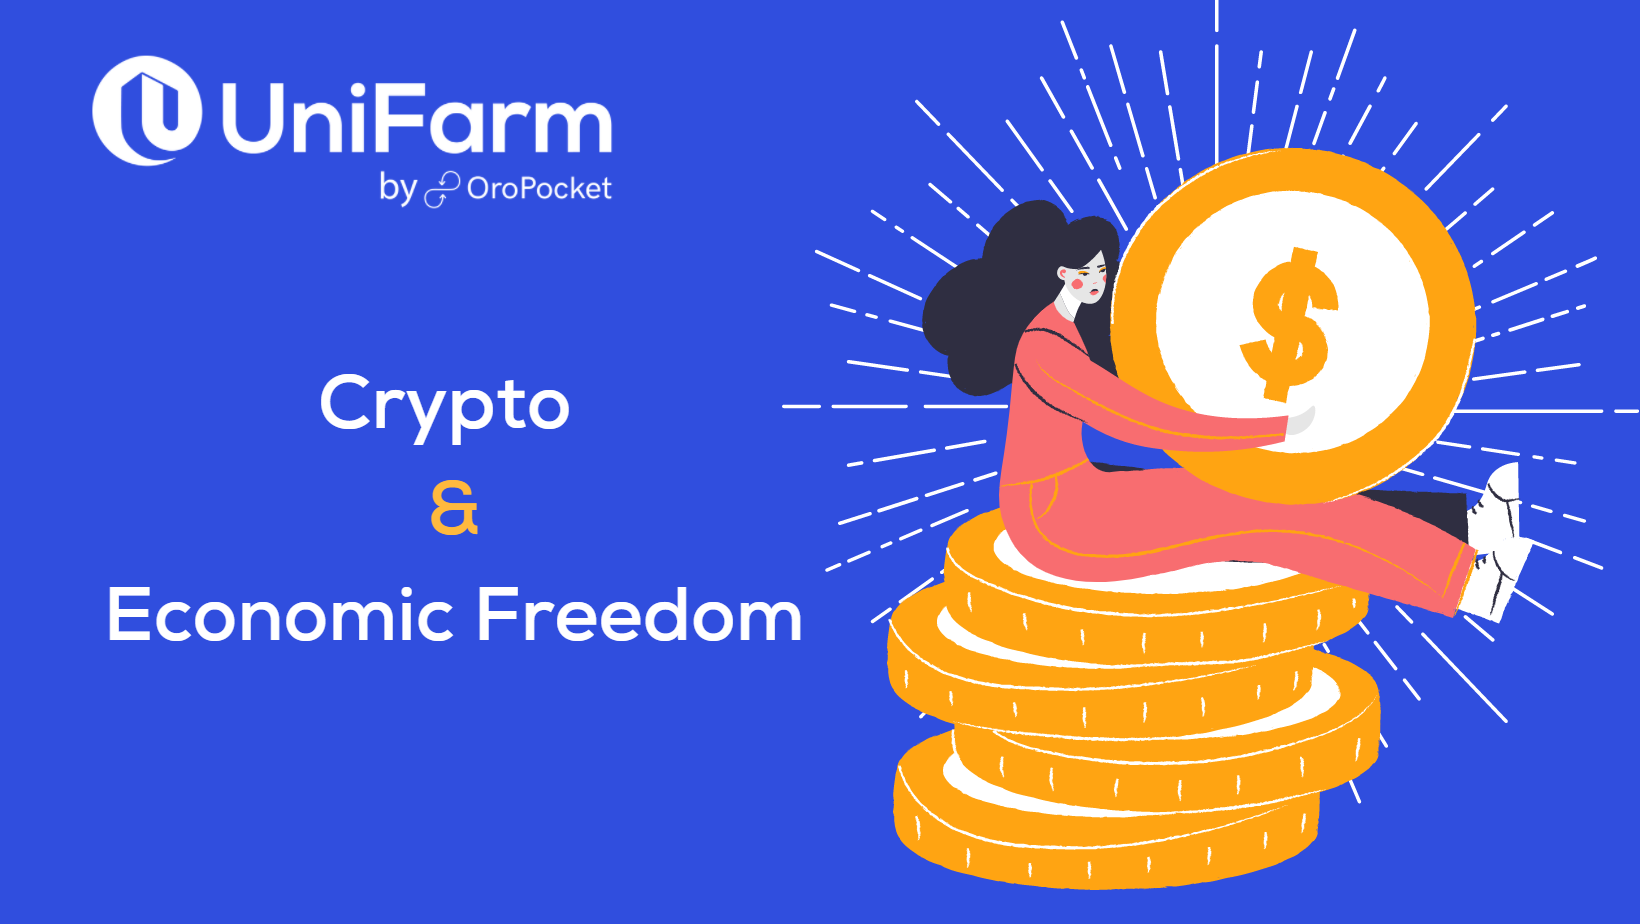 Greater Crypto Adoption Will Lead to Economic Freedom in the World